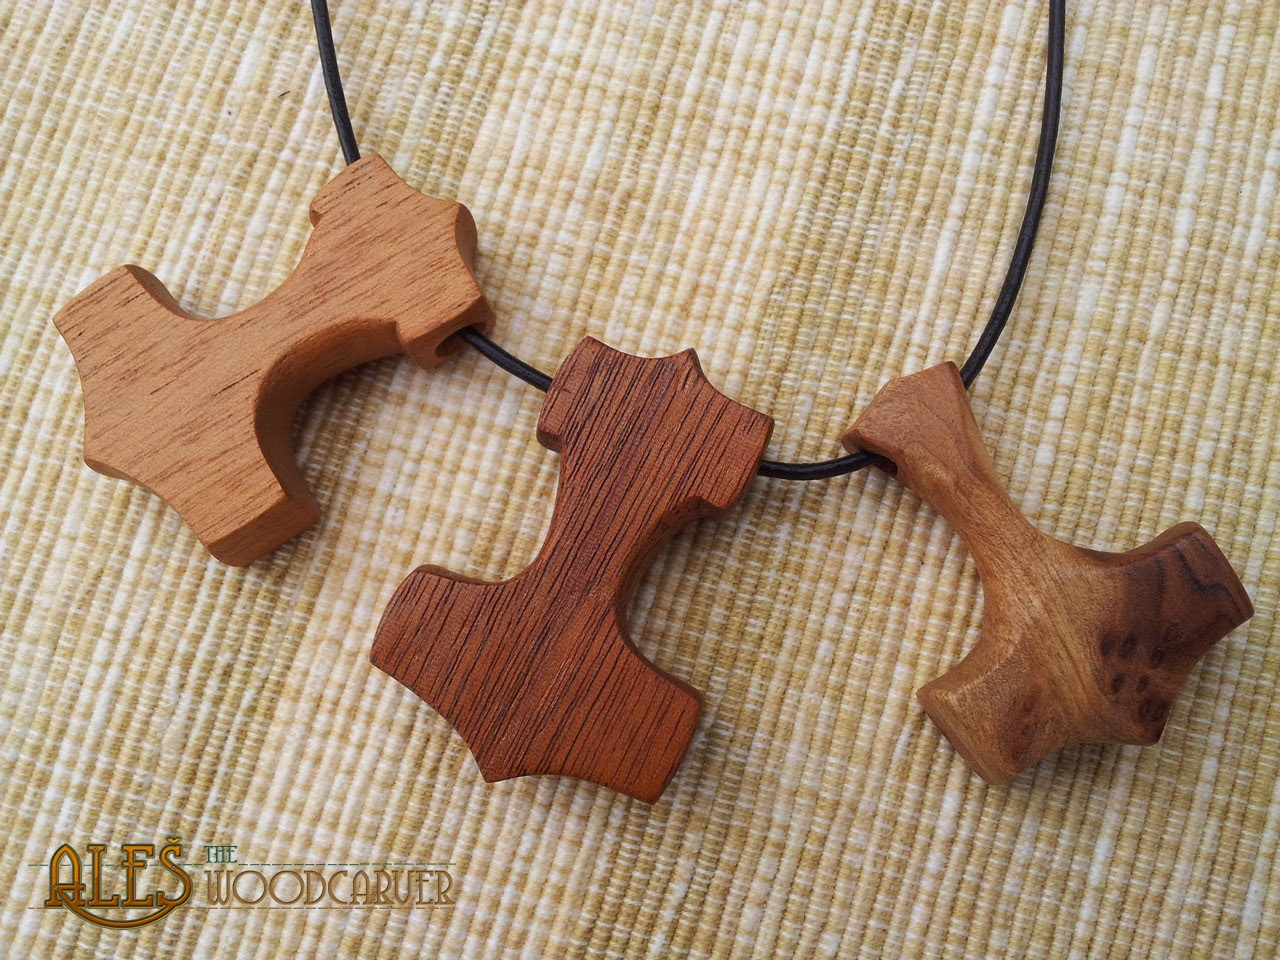 flower mary away native product turquoise necklace necklaces category tafoya jewelry cart gallery american wood carving home archives to art add